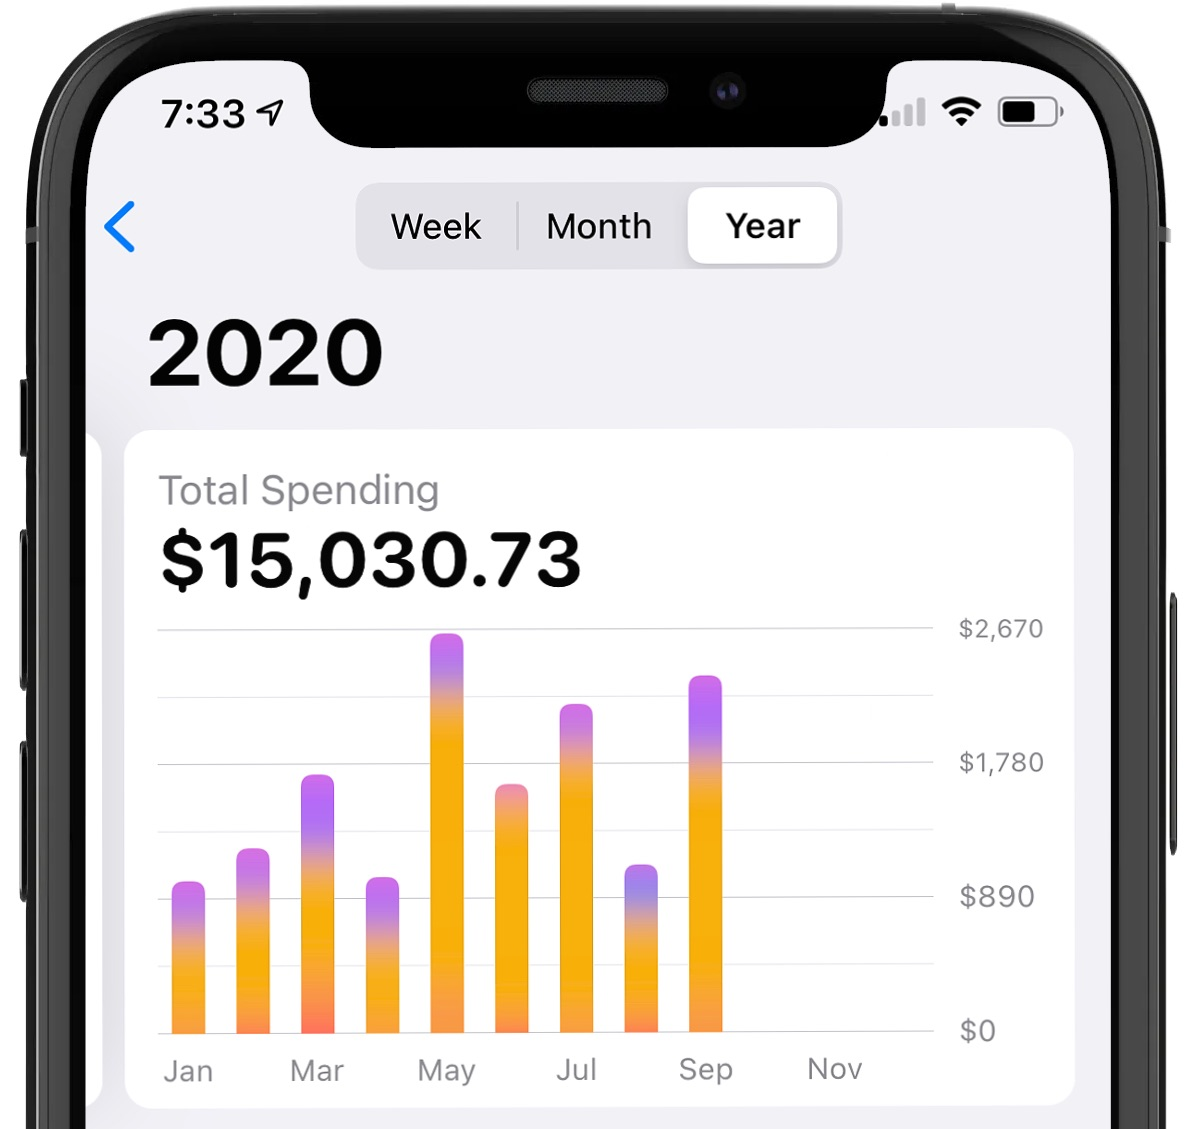 apple-card-yearly-spending-activity.jpg